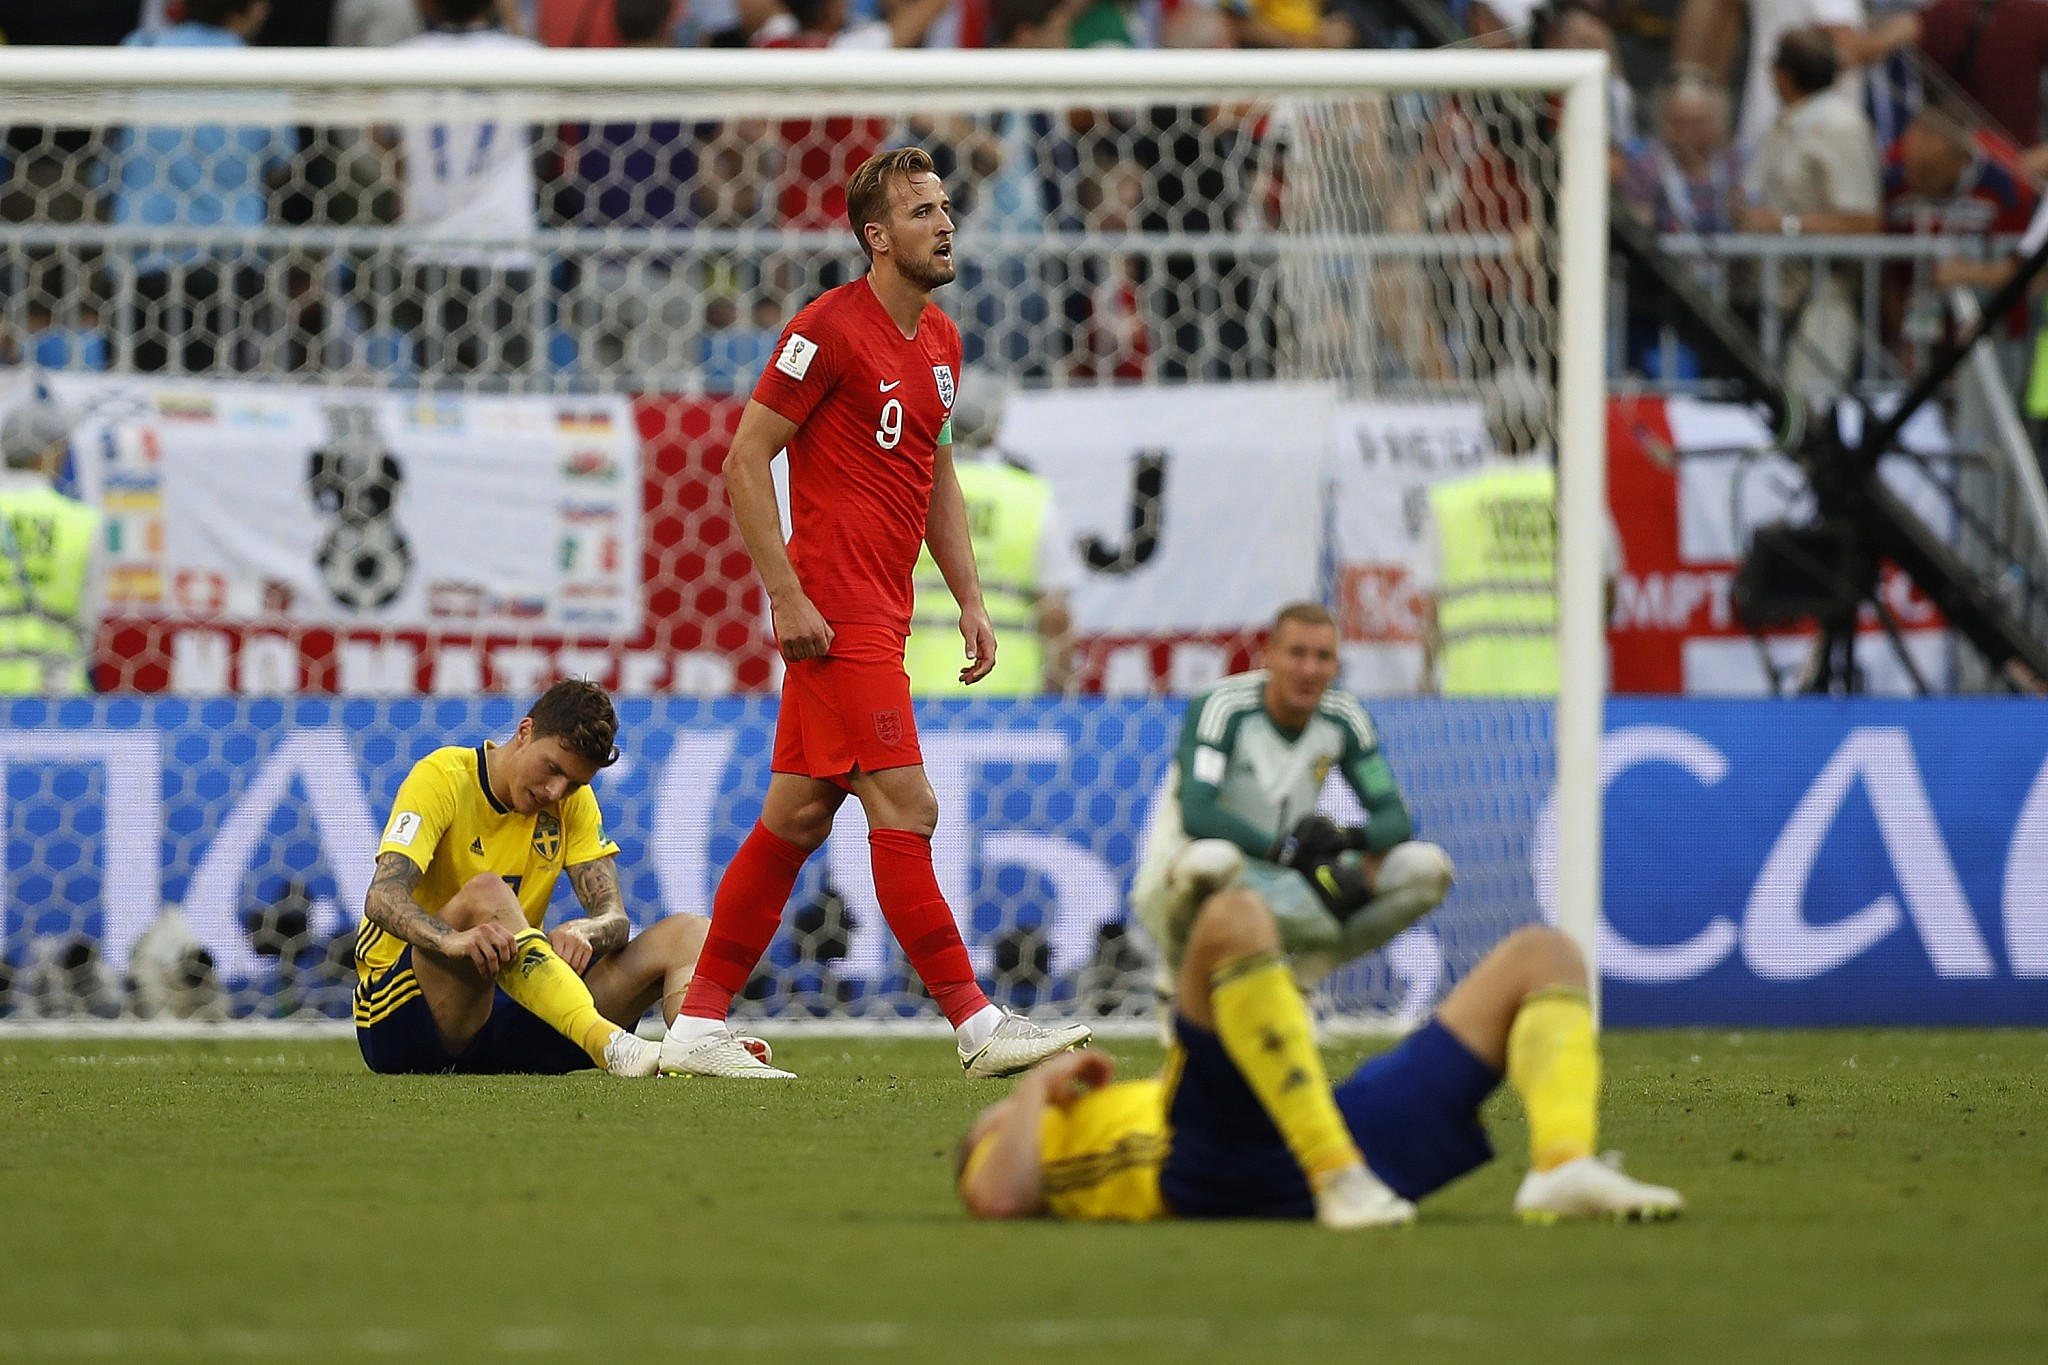 England s Harry Kane walks past Sweden s players at the end of the match  after his team 15e0e06af